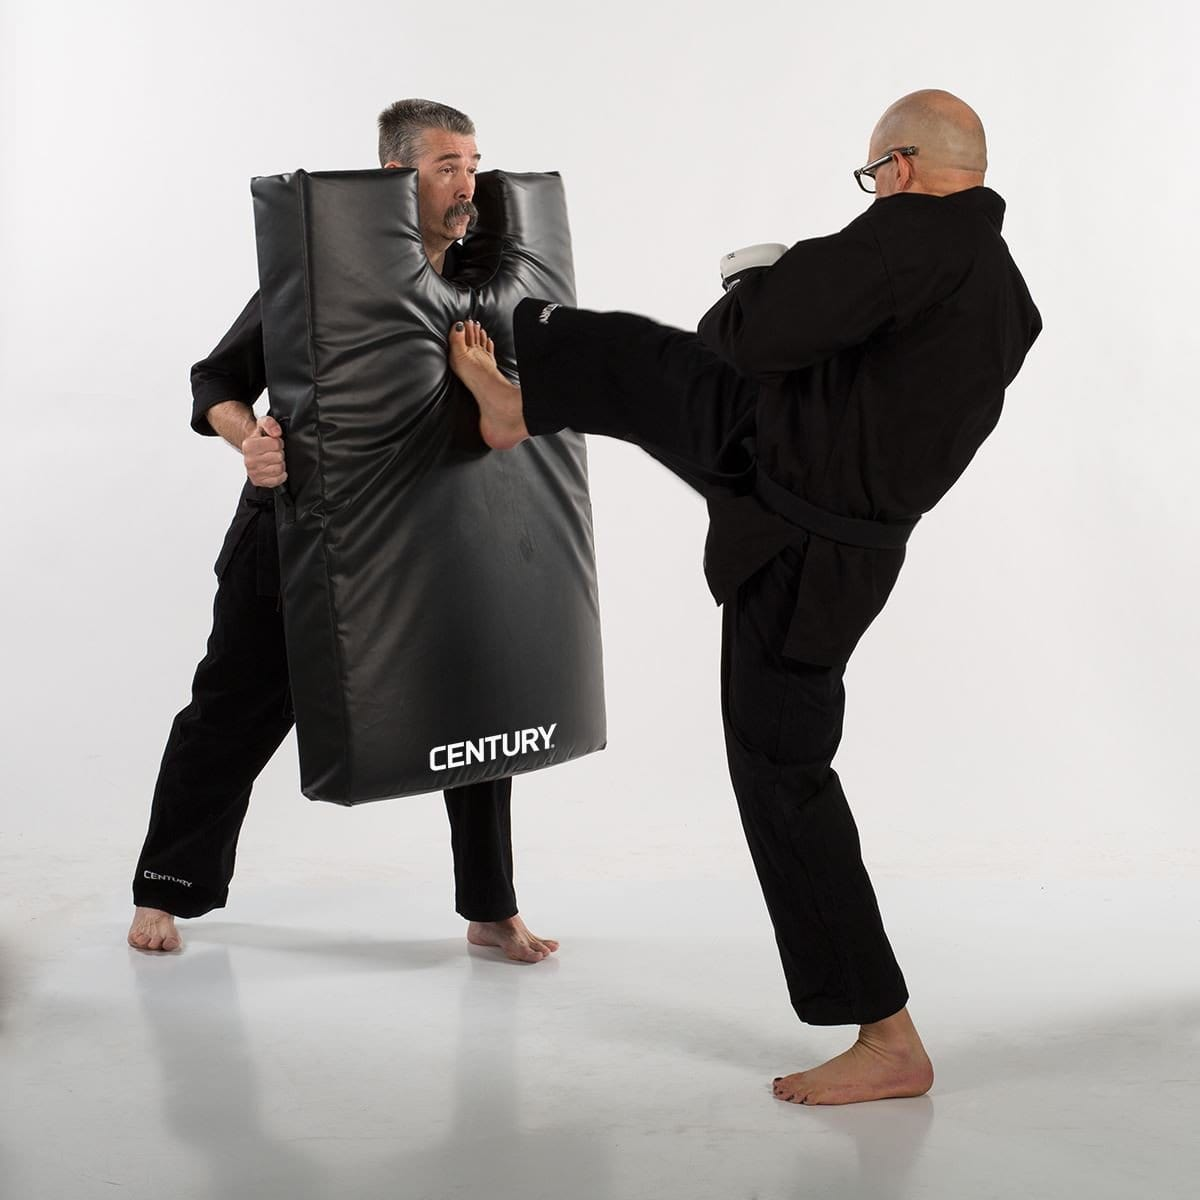 Full Body Spartan Coaches Shield - BlackBeltShop